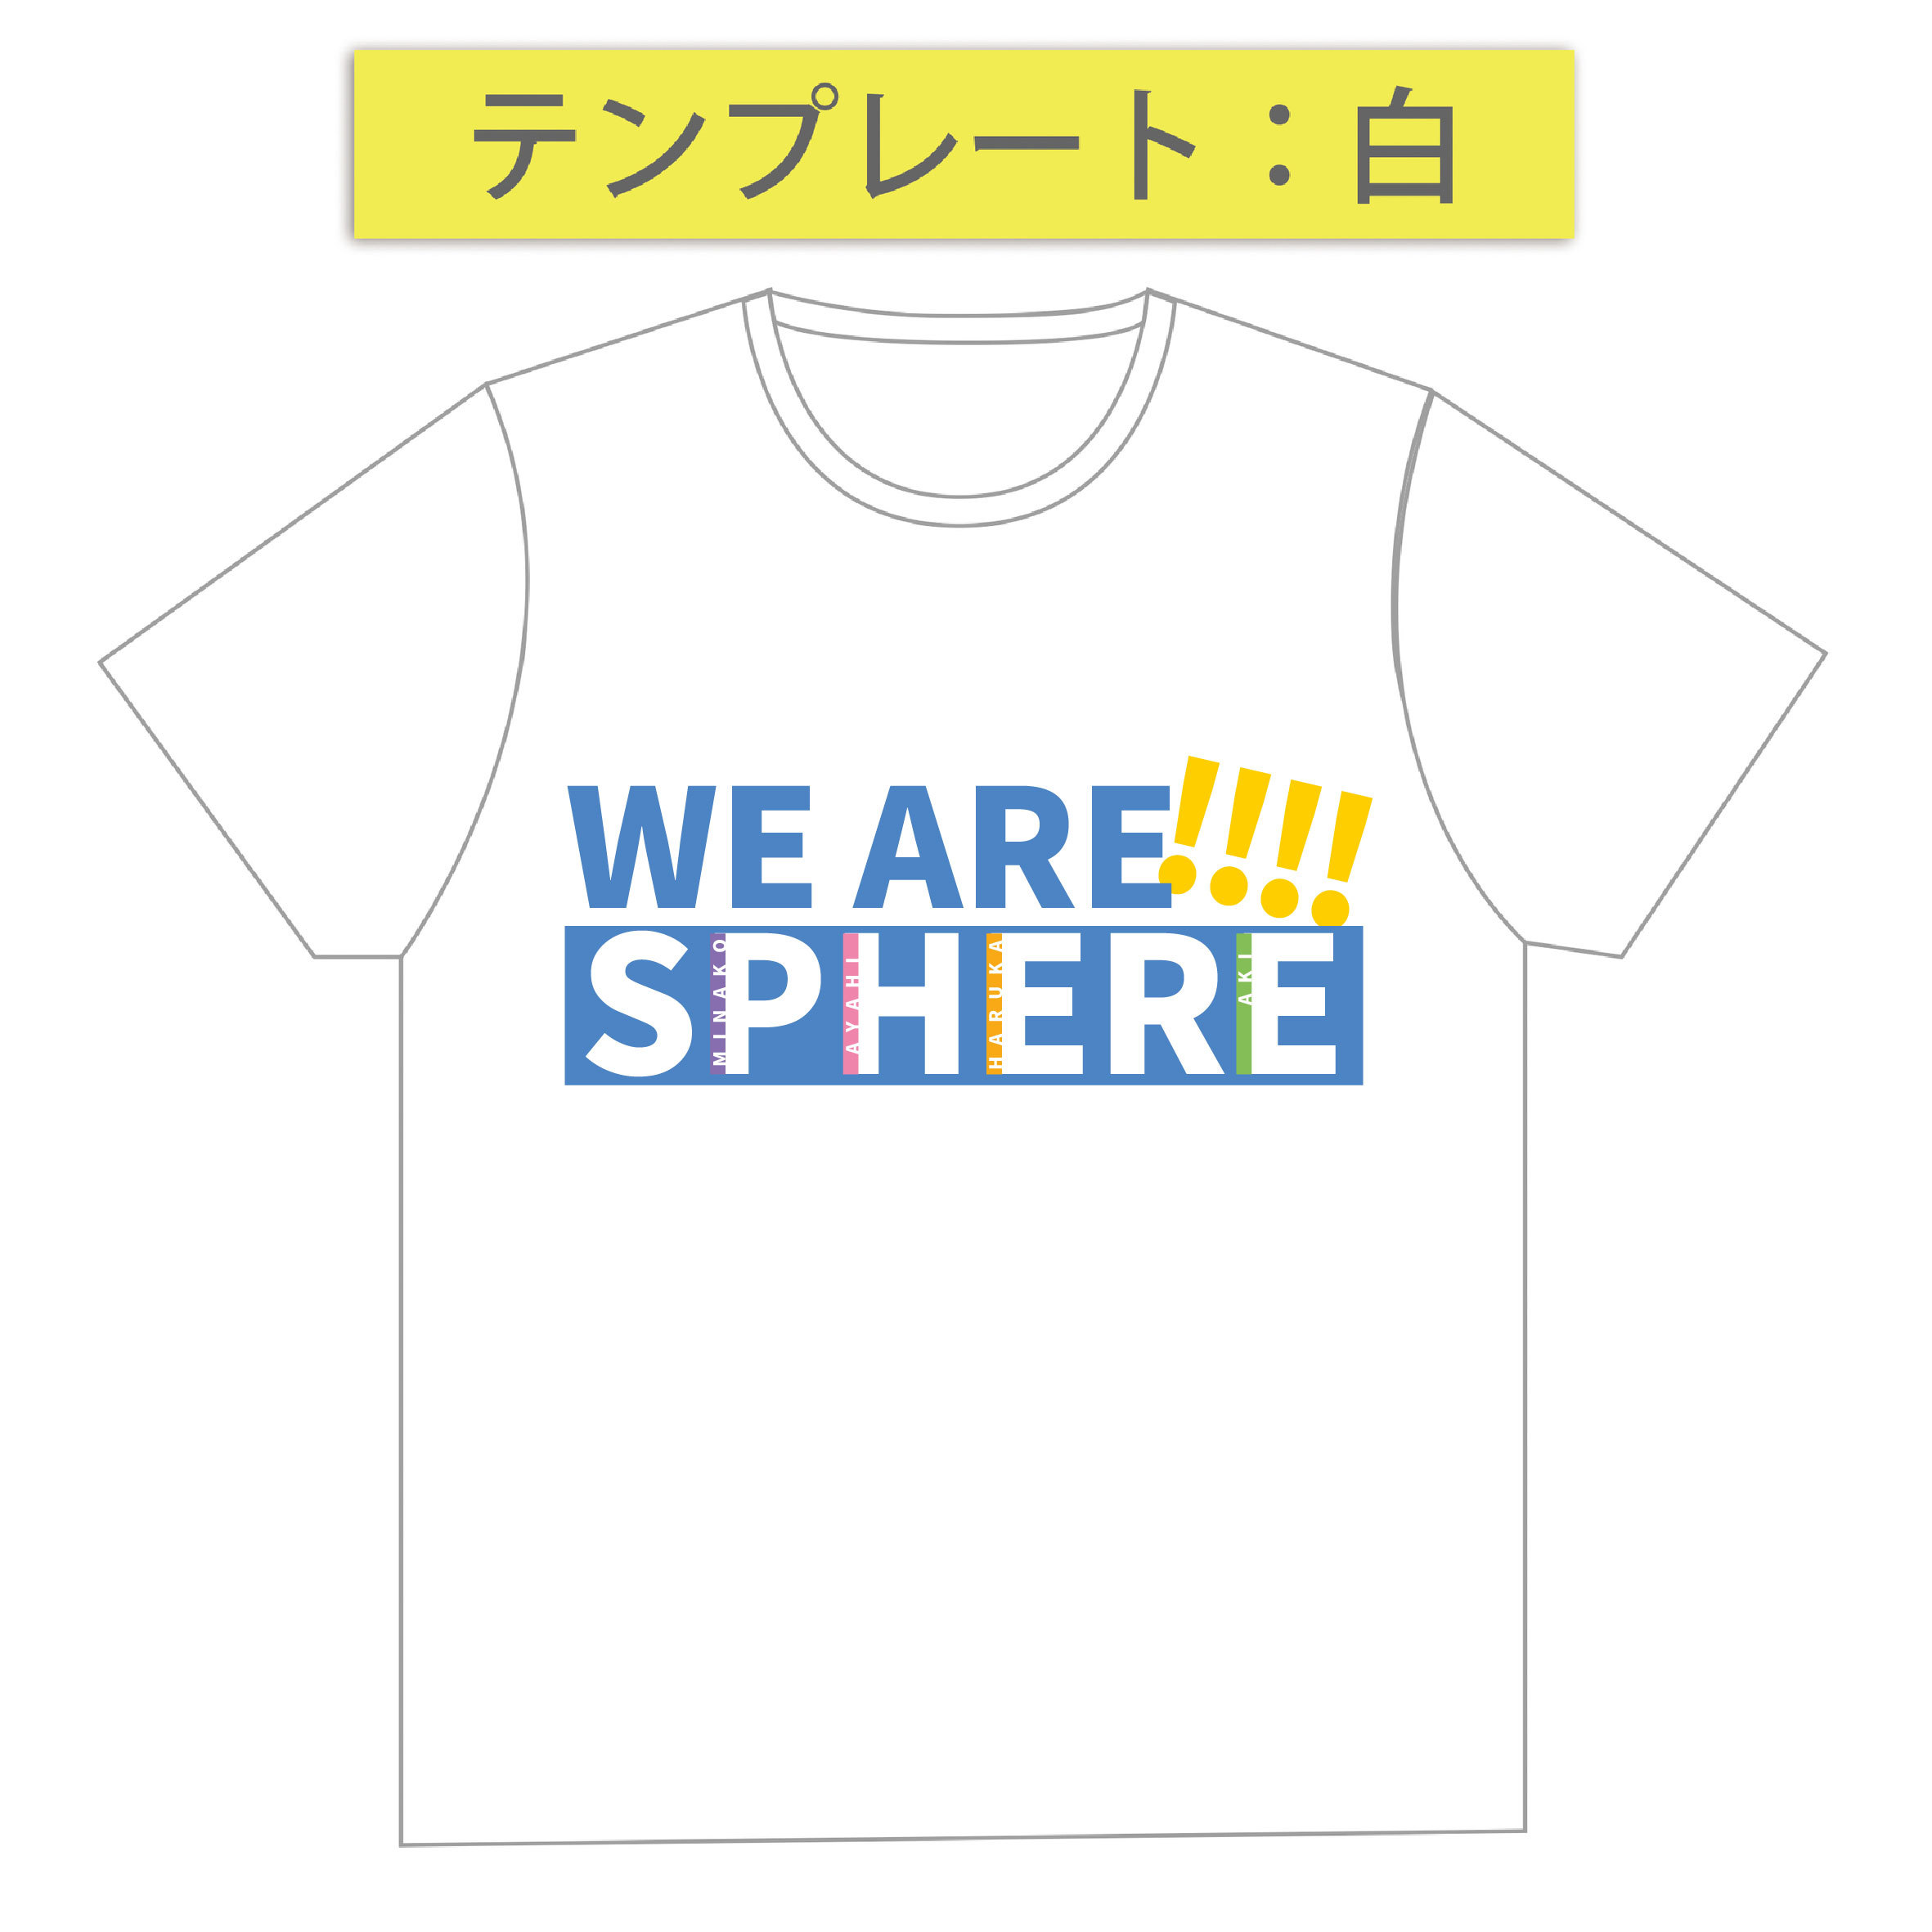 We_are_sphere-05